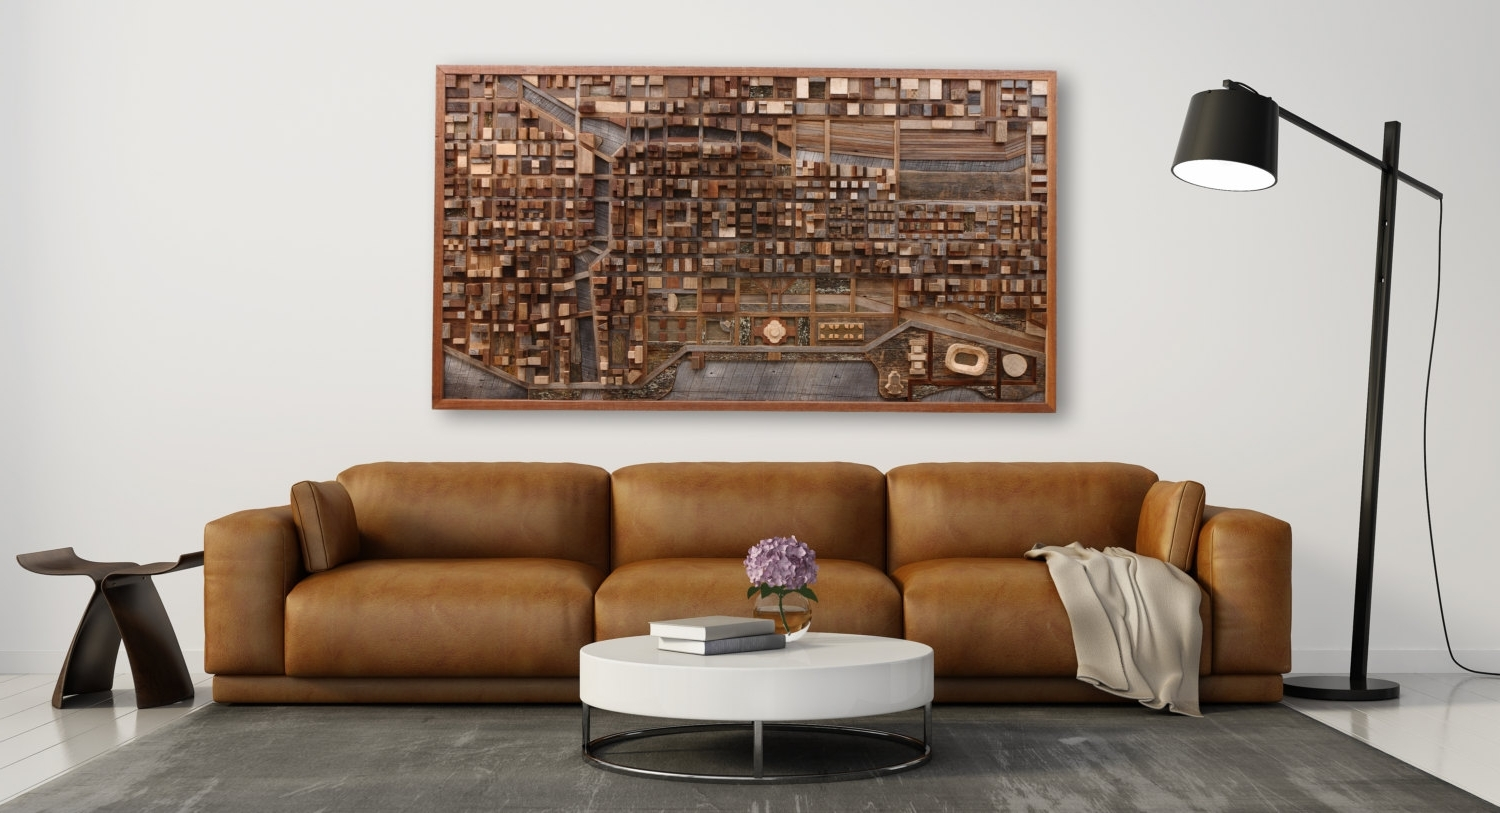 Wall Art Designs: Personalized Wood Wall Art Reclaimed Wood Wall For Popular Industrial Wall Art (View 11 of 15)